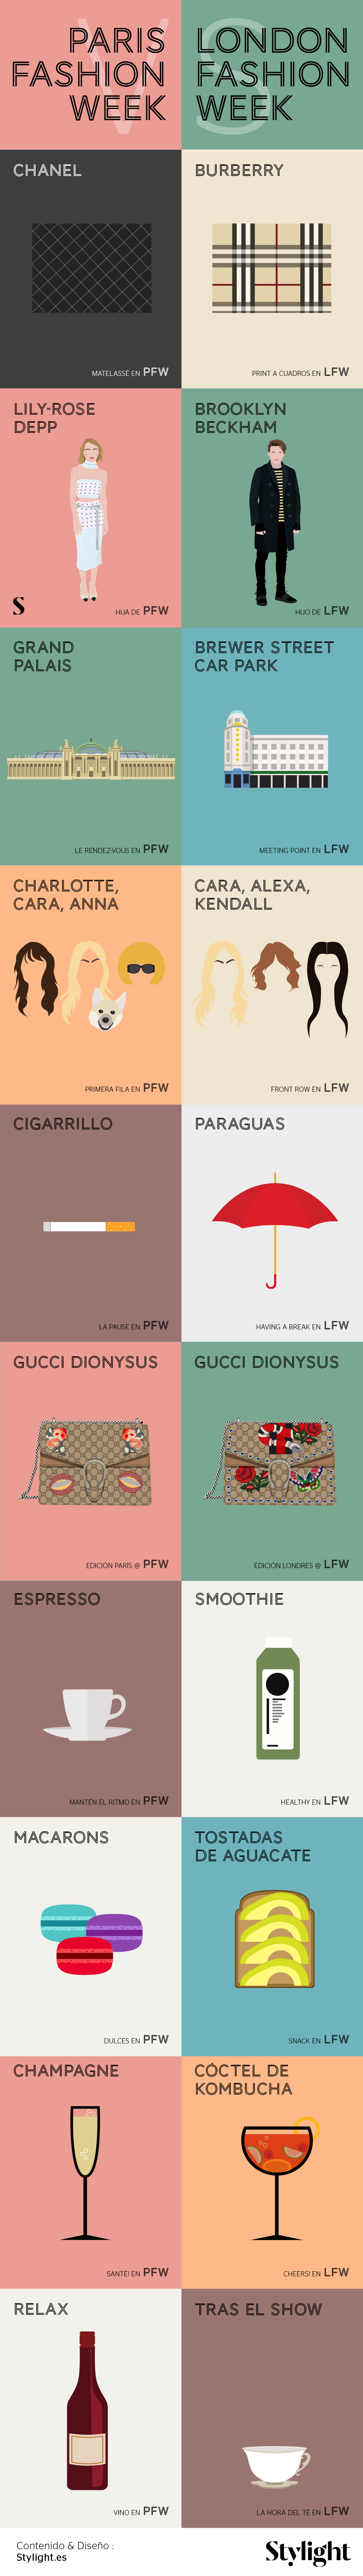 Paris-vs-Londres-Fashion-Week-Infographic-Stylight-full-size